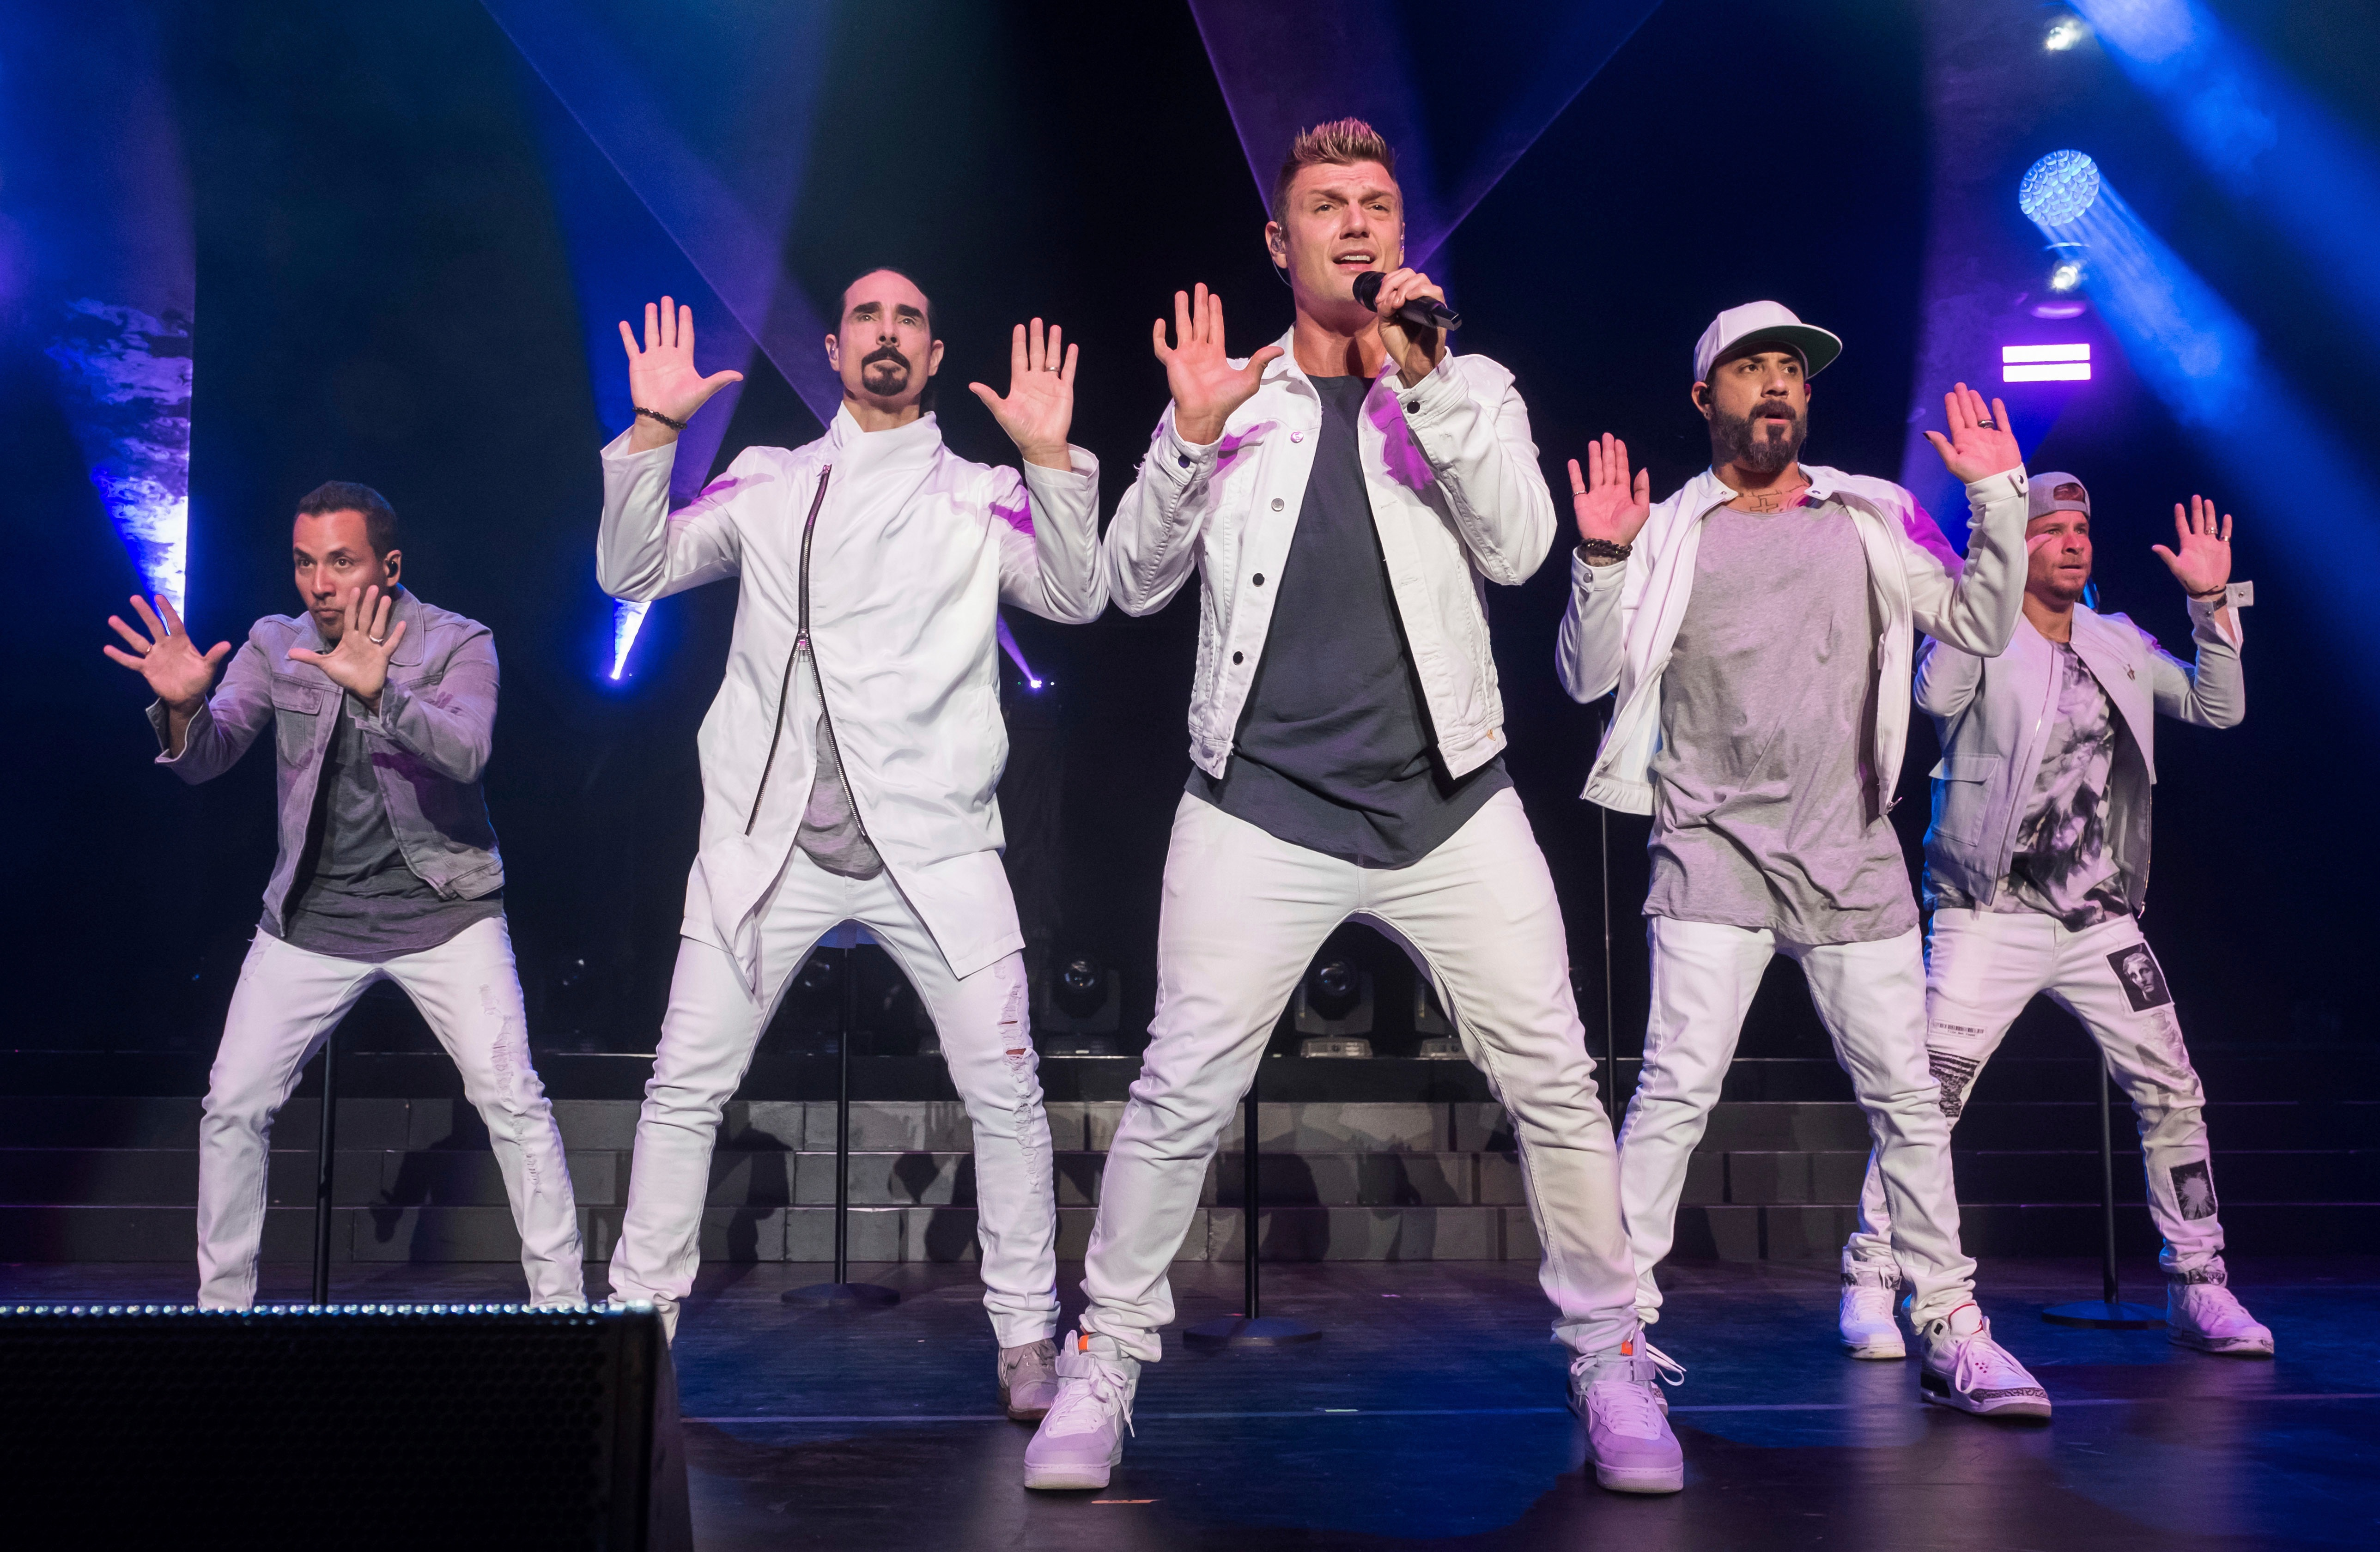 The Backstreet Boys, from left, Howie Dorough, Kevin Richardson, Nick Carter, AJ McLean and Brian Littrell performing last year in New York Photo: REX